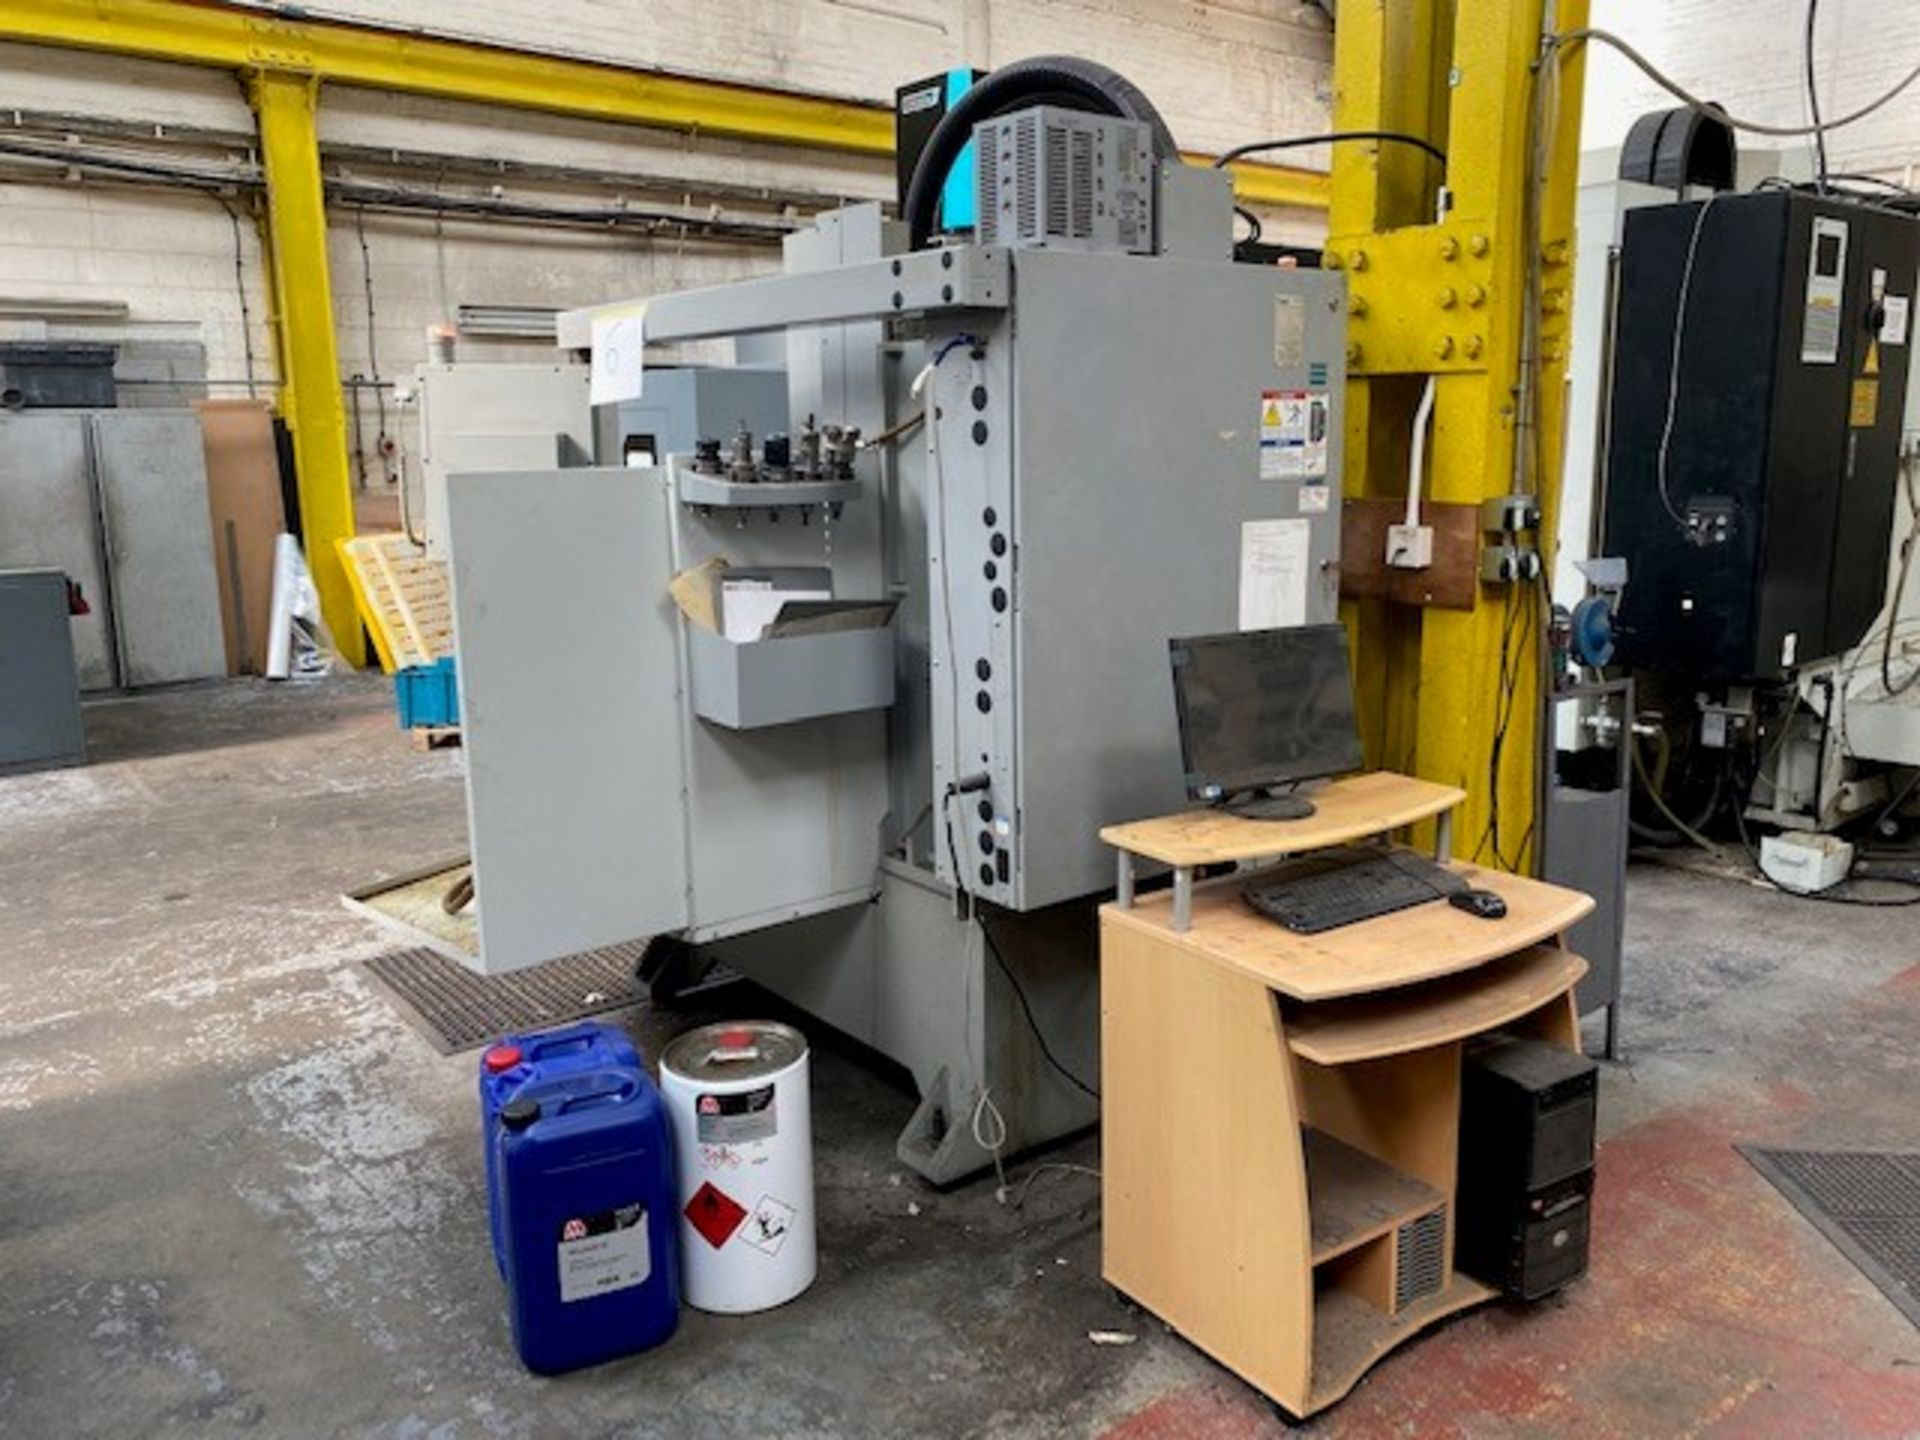 HASS CNC VERTICAL MACHINING CENTRE MODEL: TM-3CE SERIAL No: 1069469 DOM: 07/08 TO INCLUDE MANUALS - Image 5 of 5